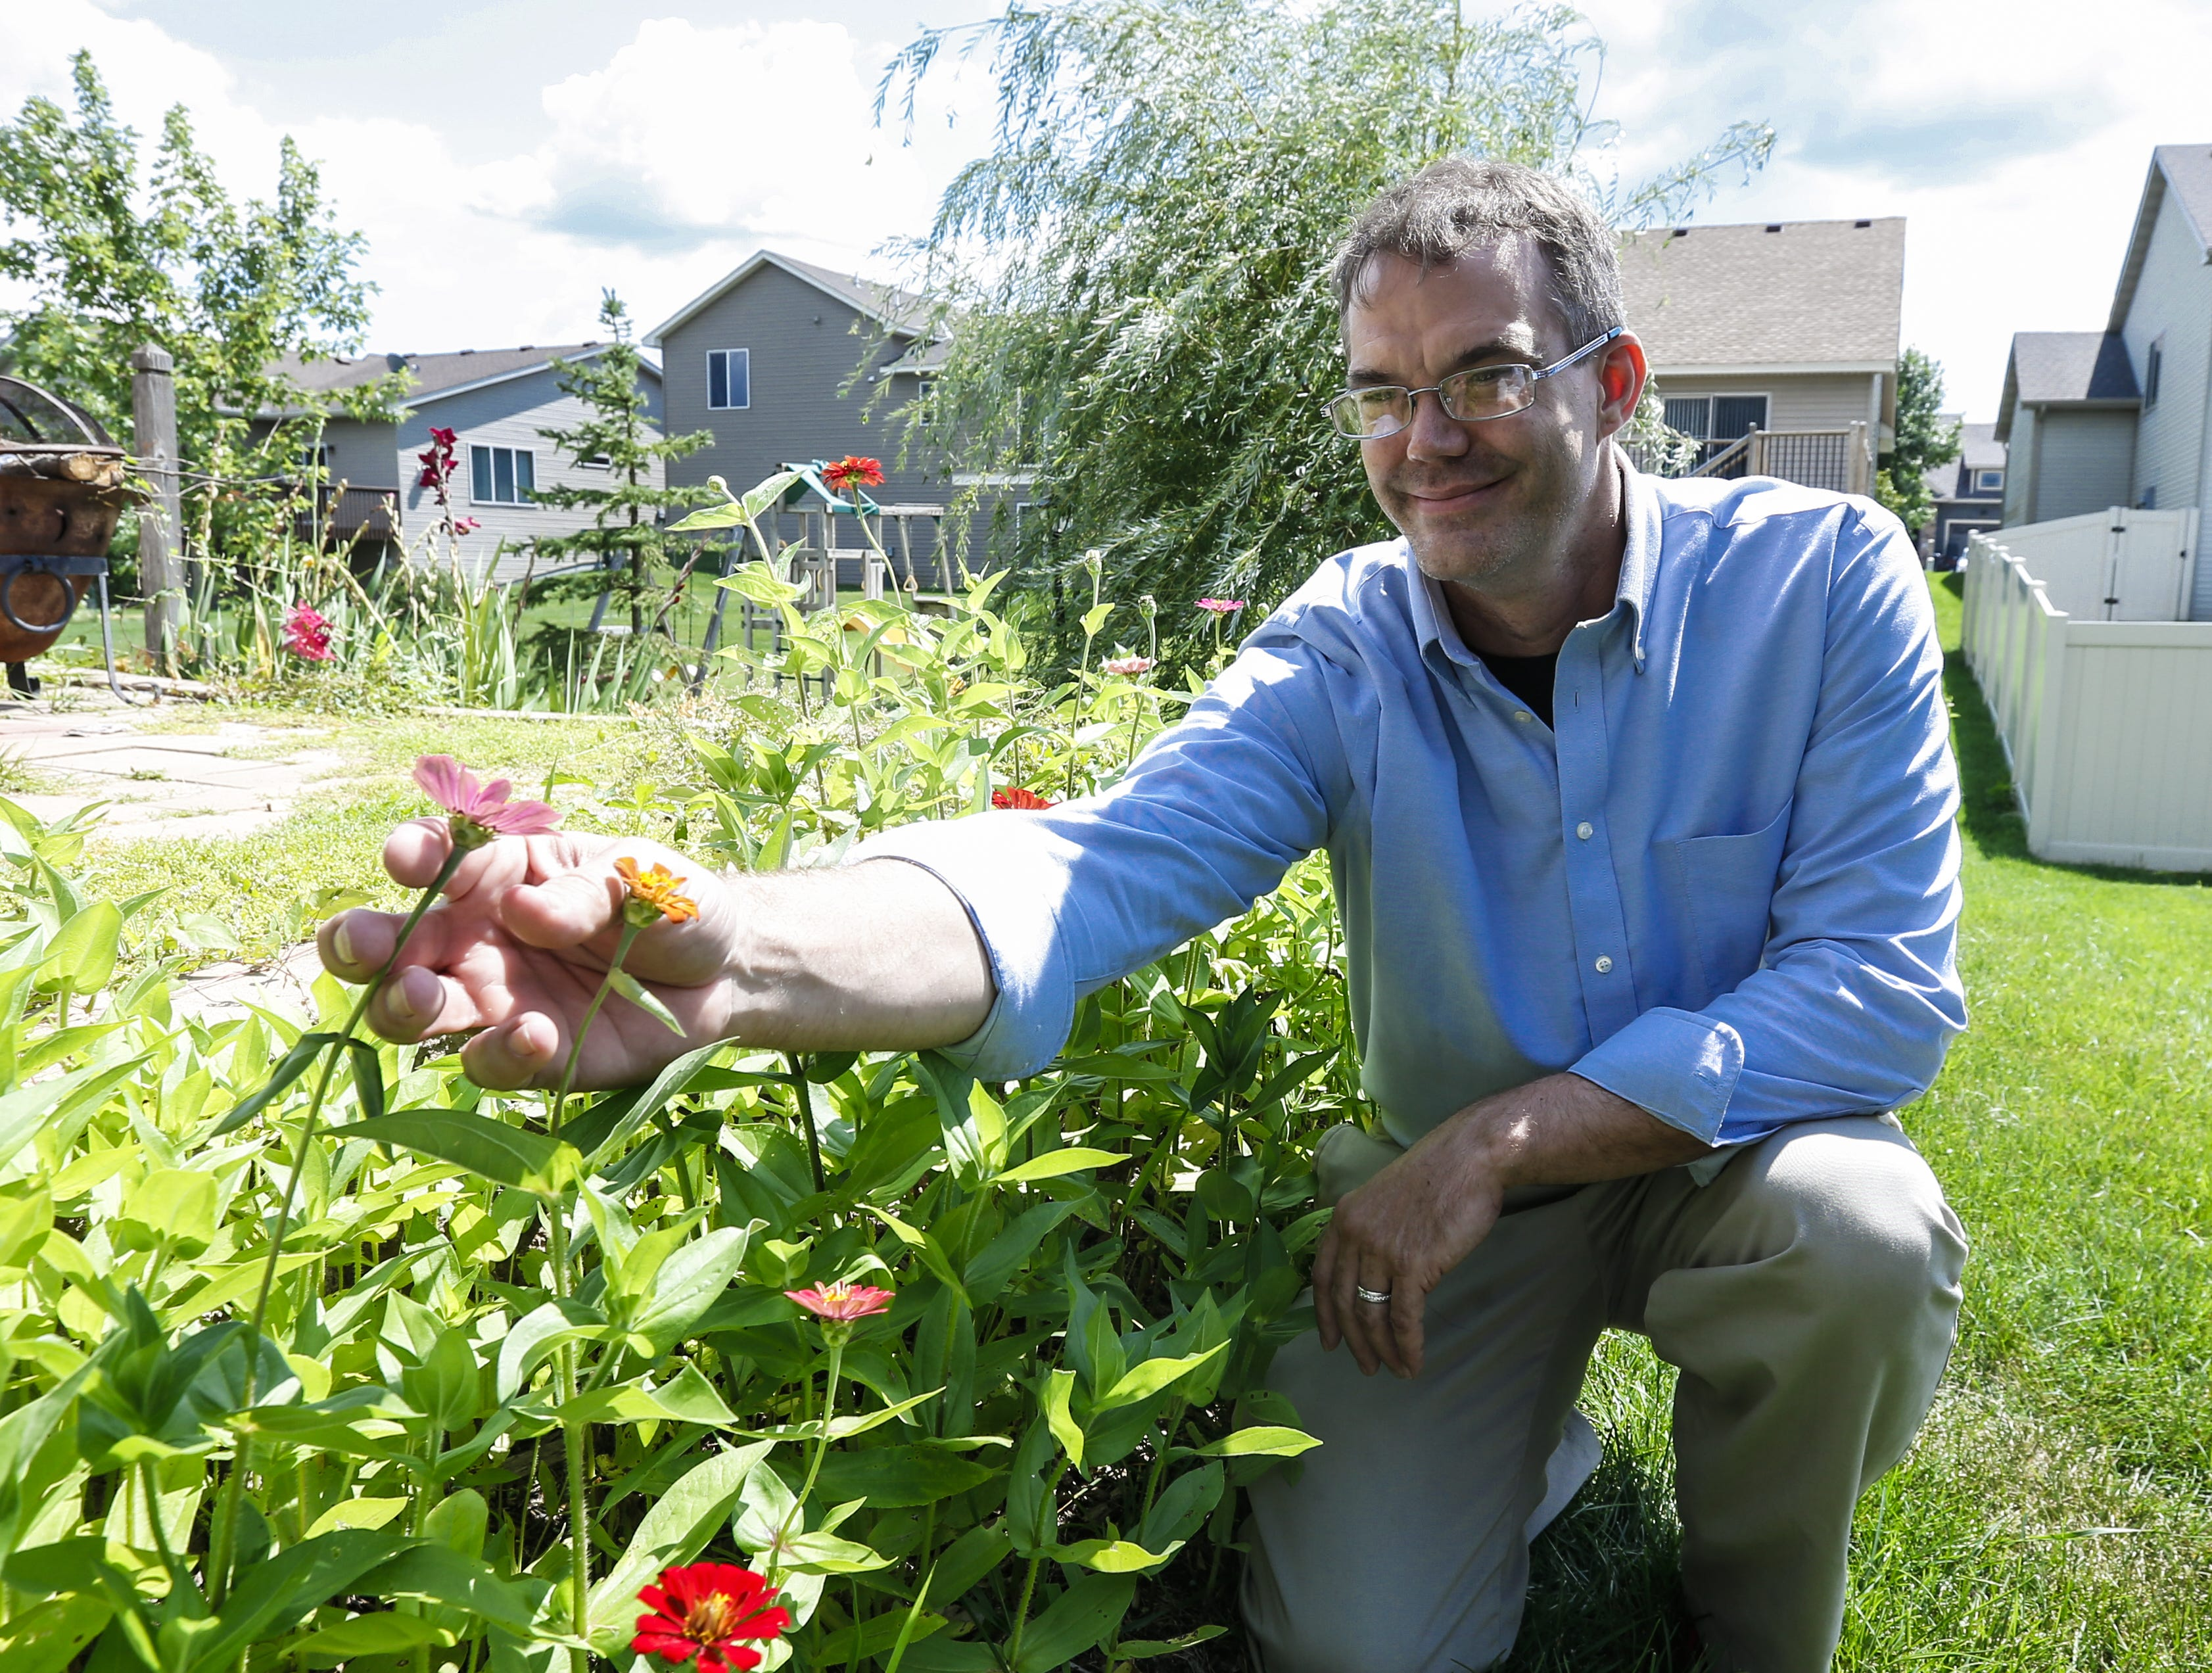 Nate Lindstrom works on his garden in August 2019 at his house in Ramsey, Minn.